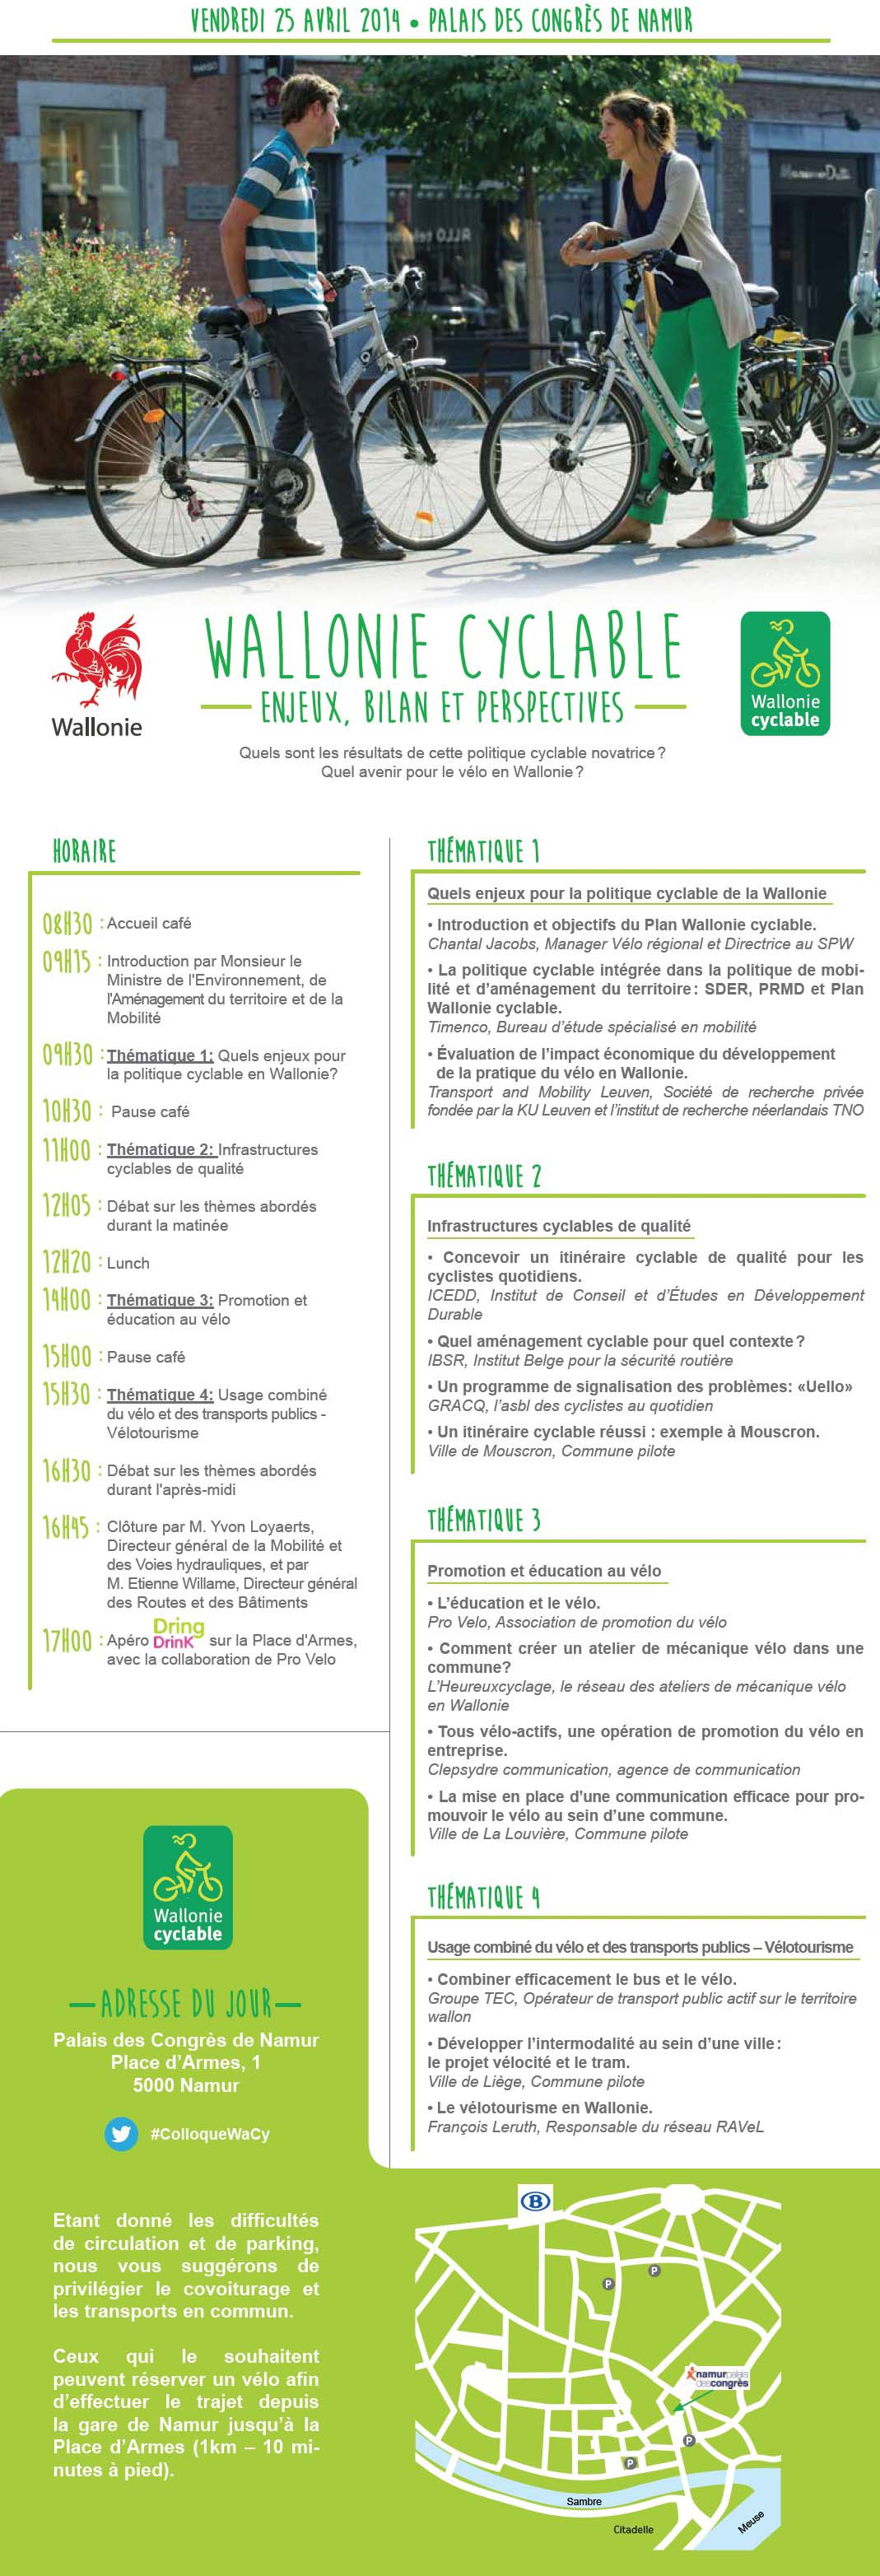 programme colloque final.jpg